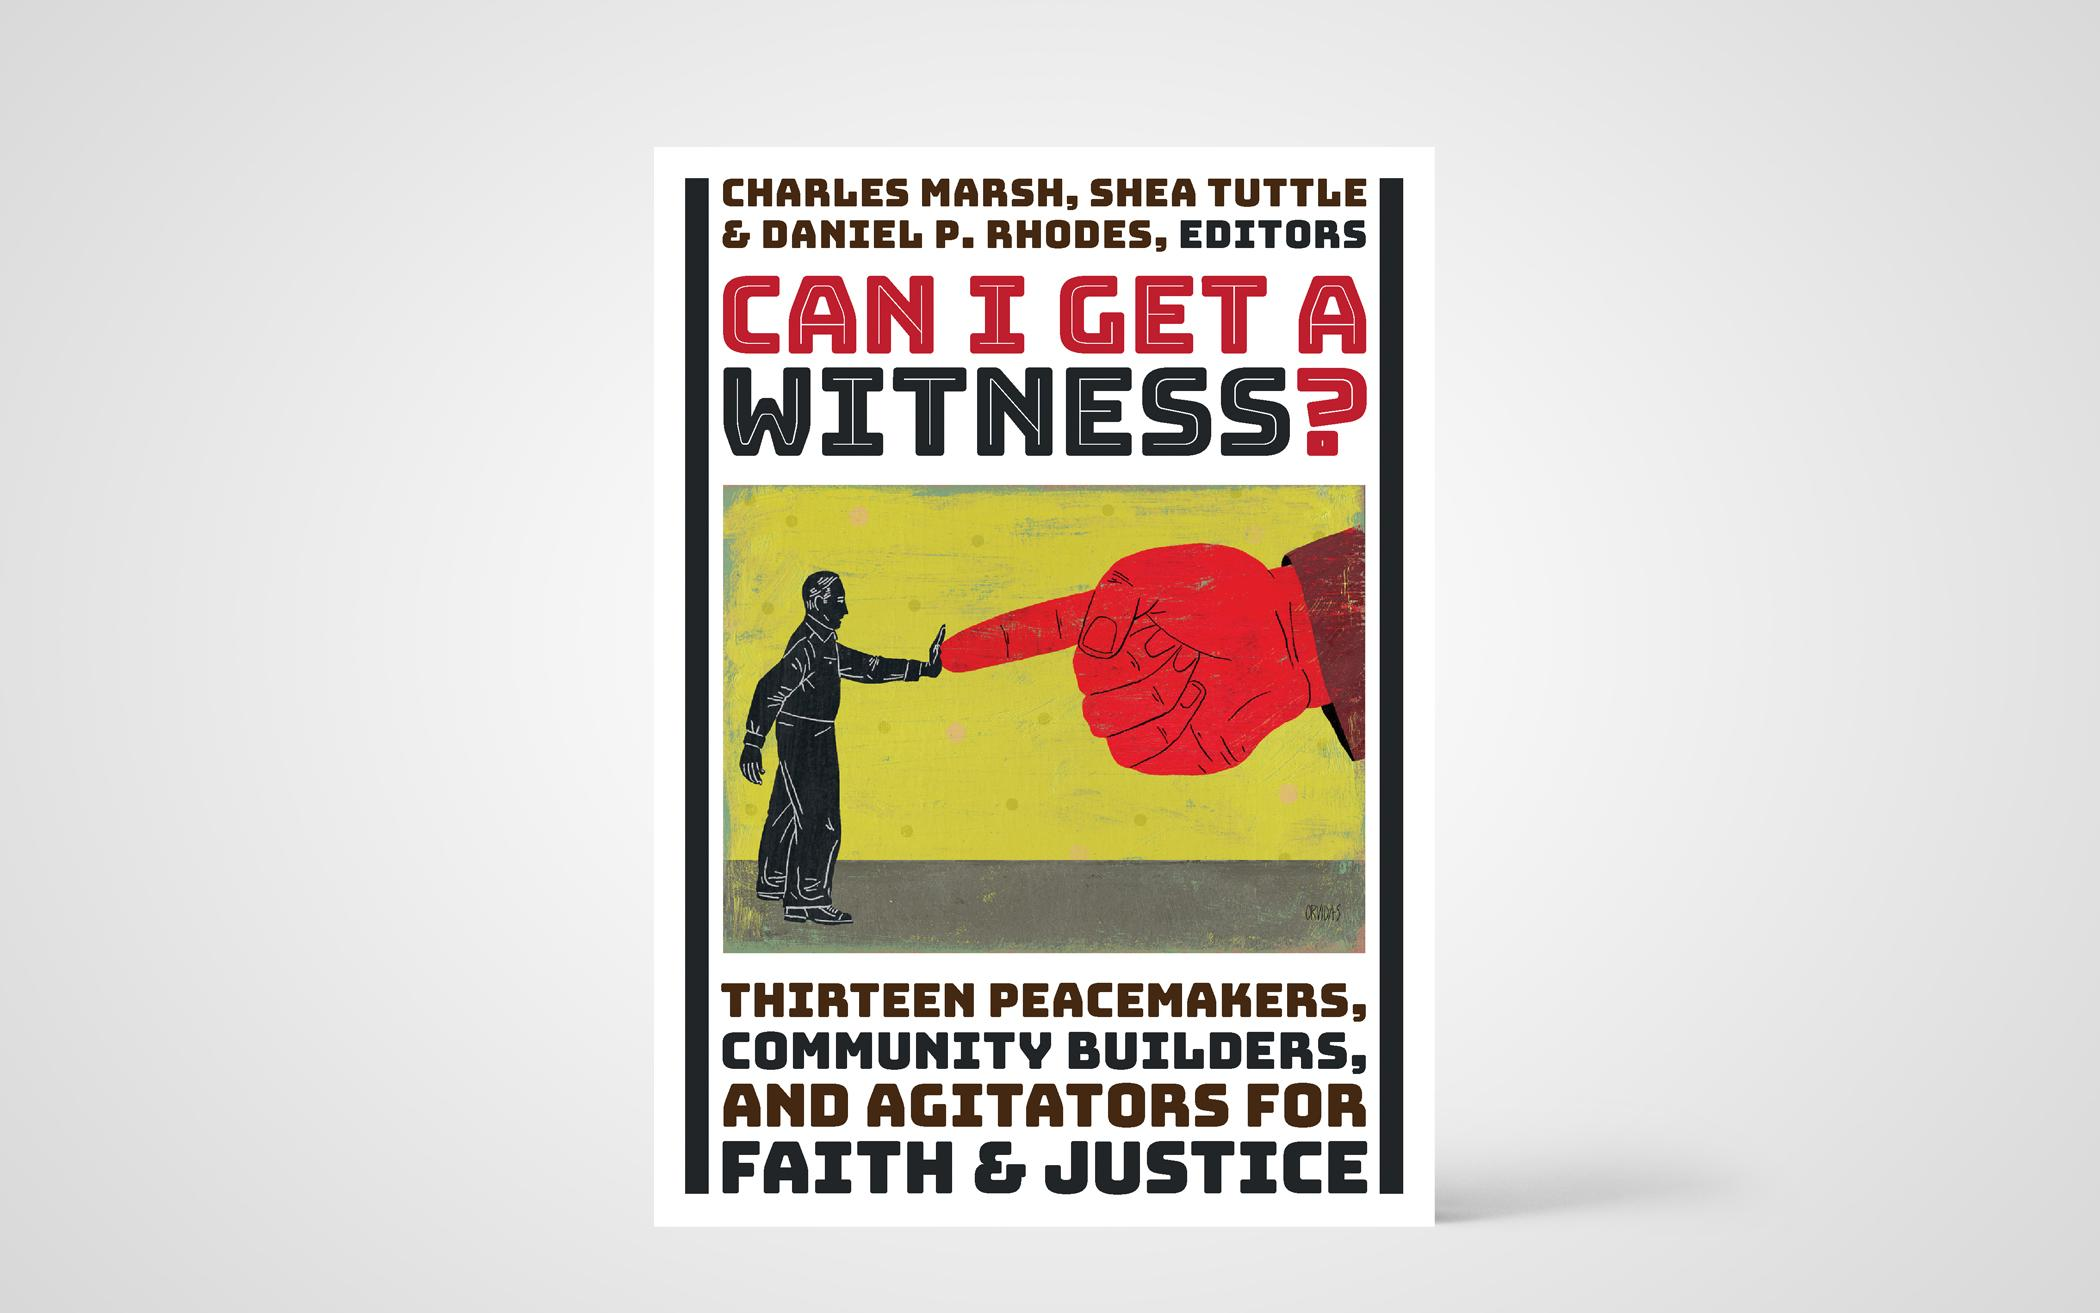 Can I Get a Witness? Thirteen Peacemakers, Community Builders, and Agitators for Faith & Justice